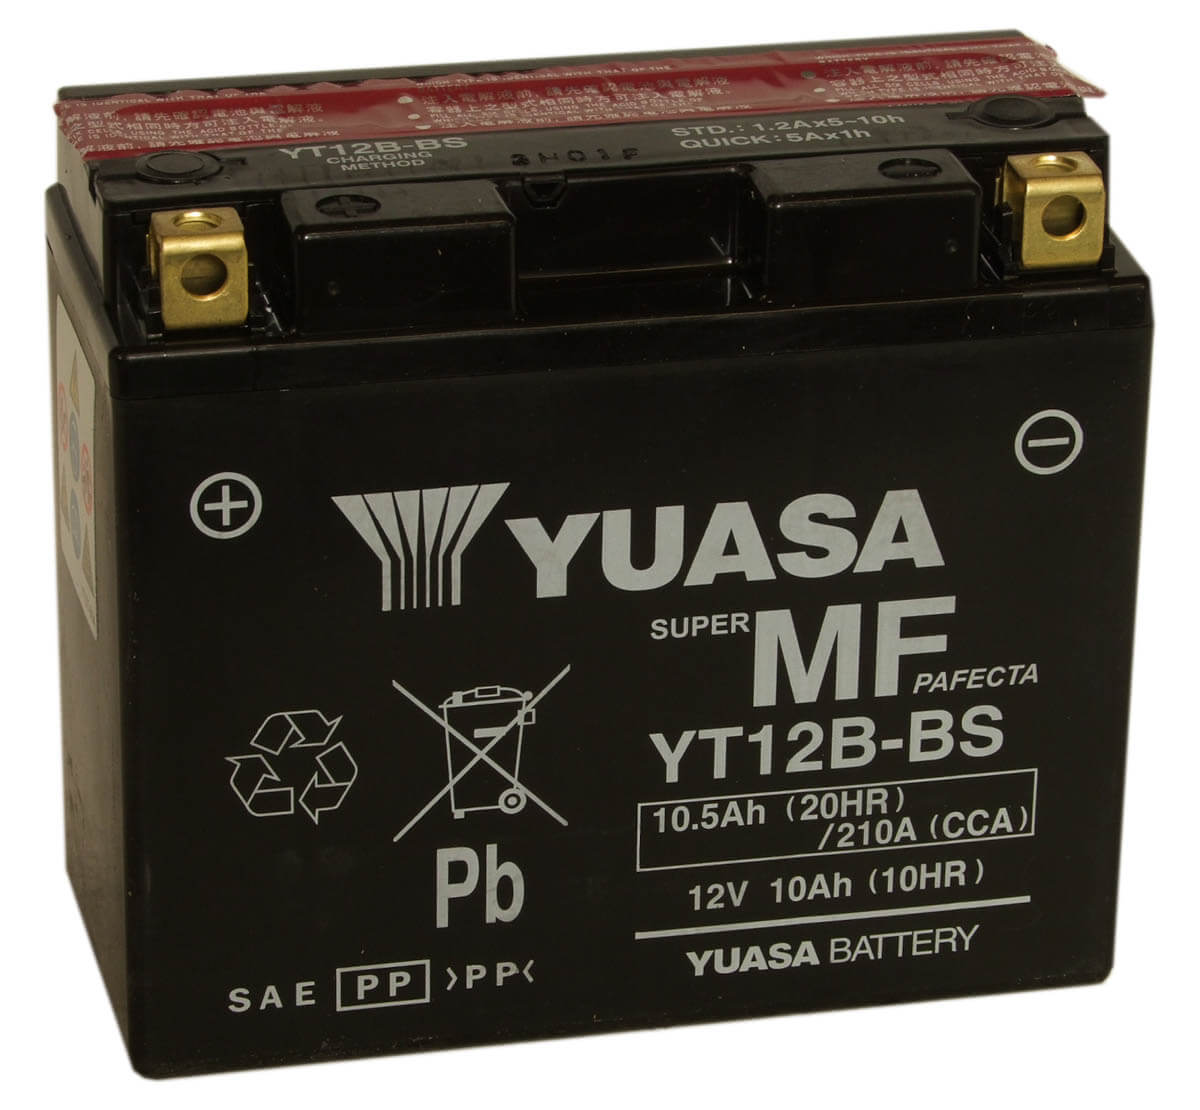 yt12b 4 yt12b bs yuasa motorcycle battery ct12b 4 for fazer fzs 600 and more mds battery. Black Bedroom Furniture Sets. Home Design Ideas